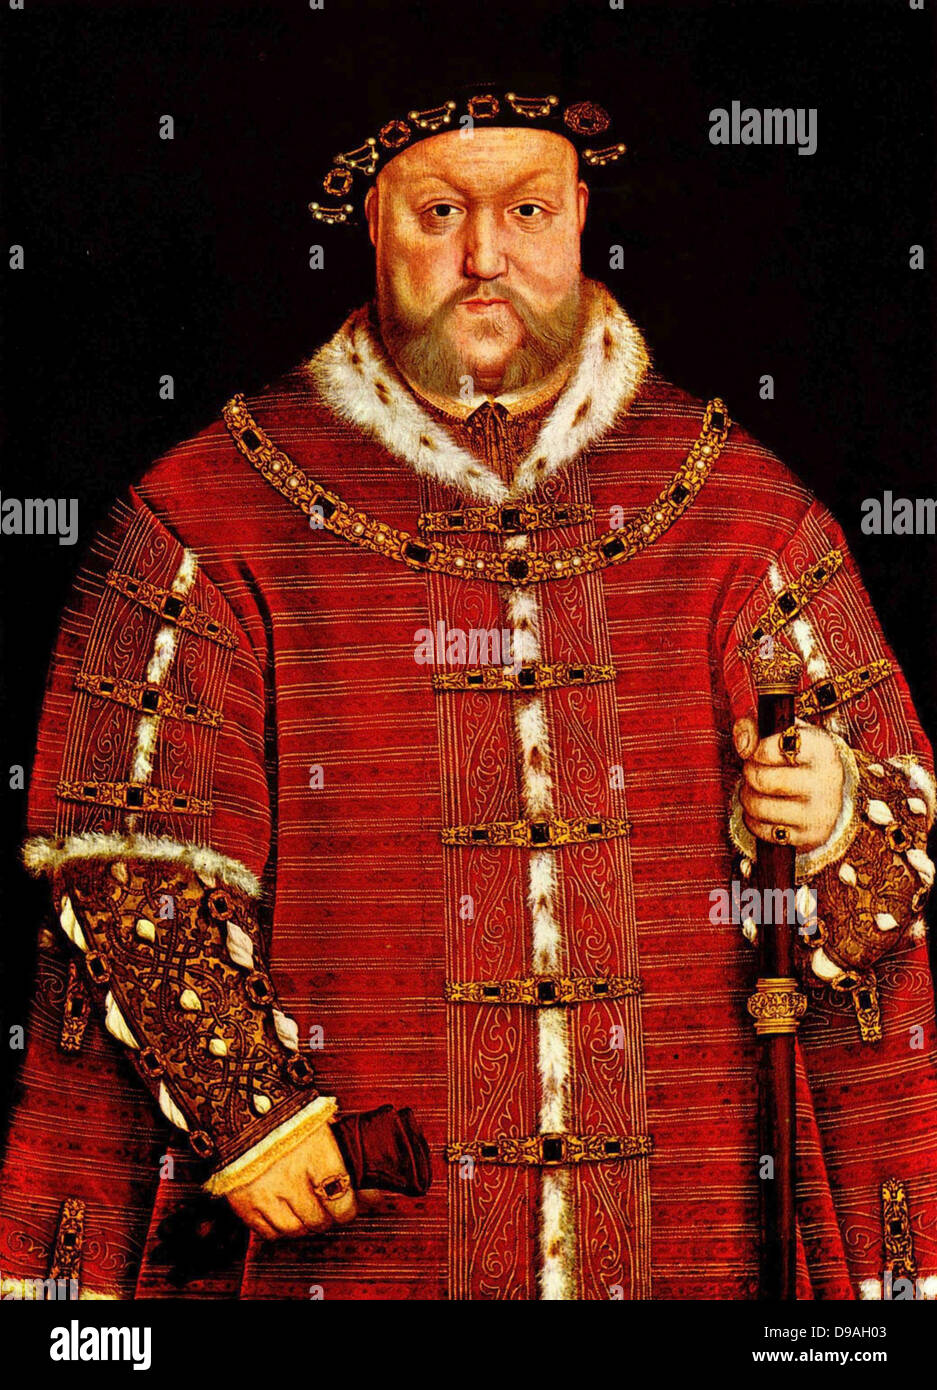 Re Henry VIII Immagini Stock